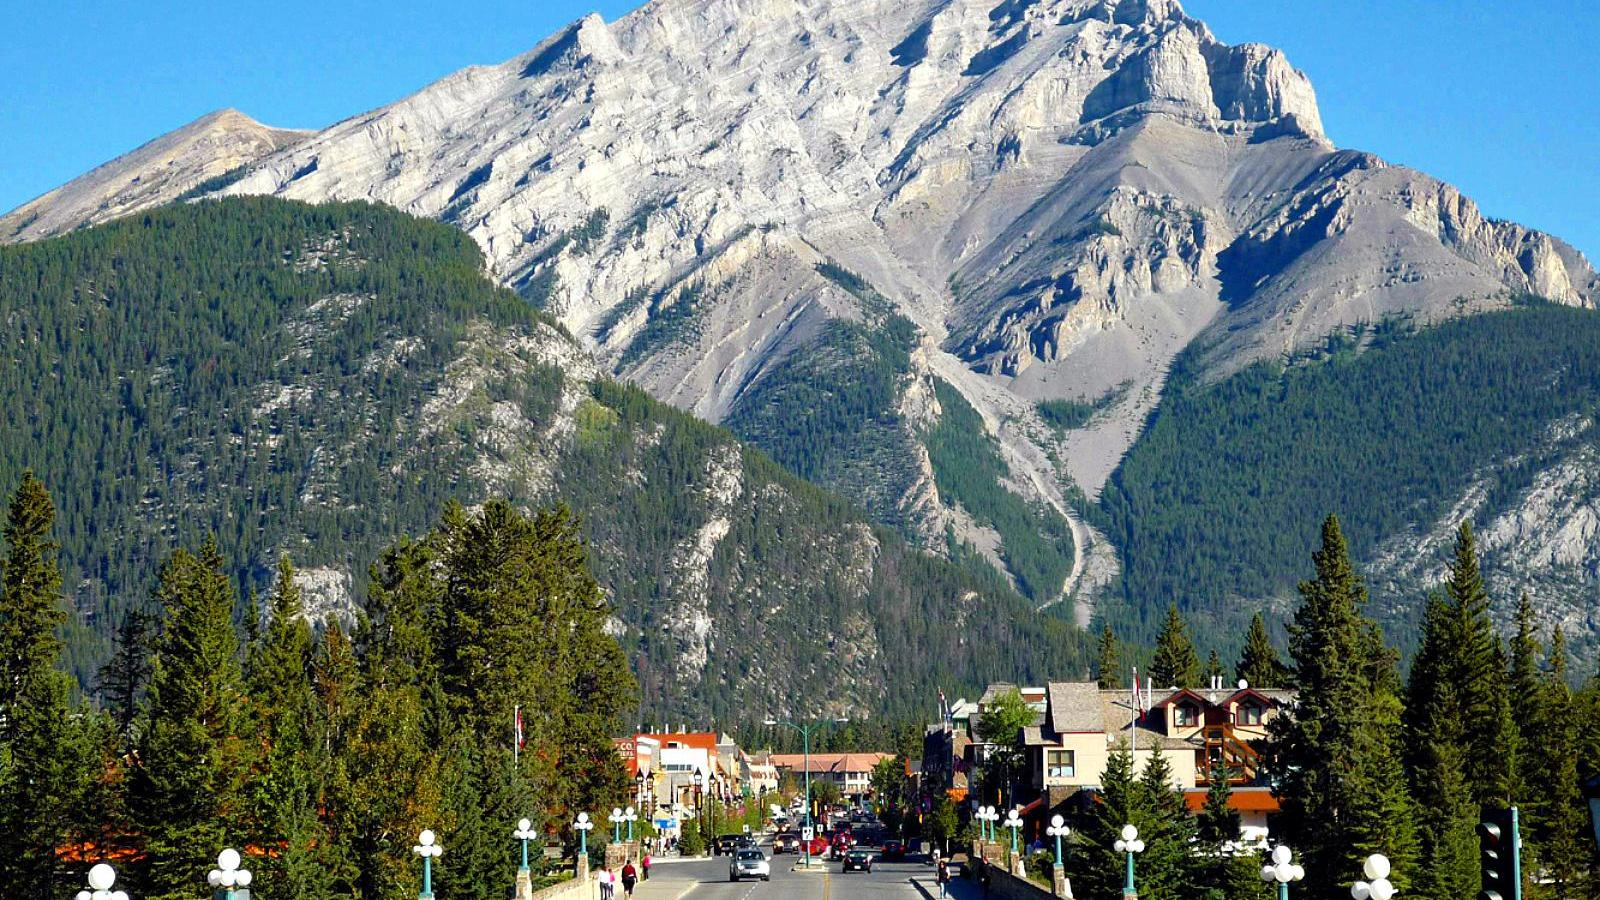 of banff alberta   149520   High Quality and Resolution Wallpapers 1600x900